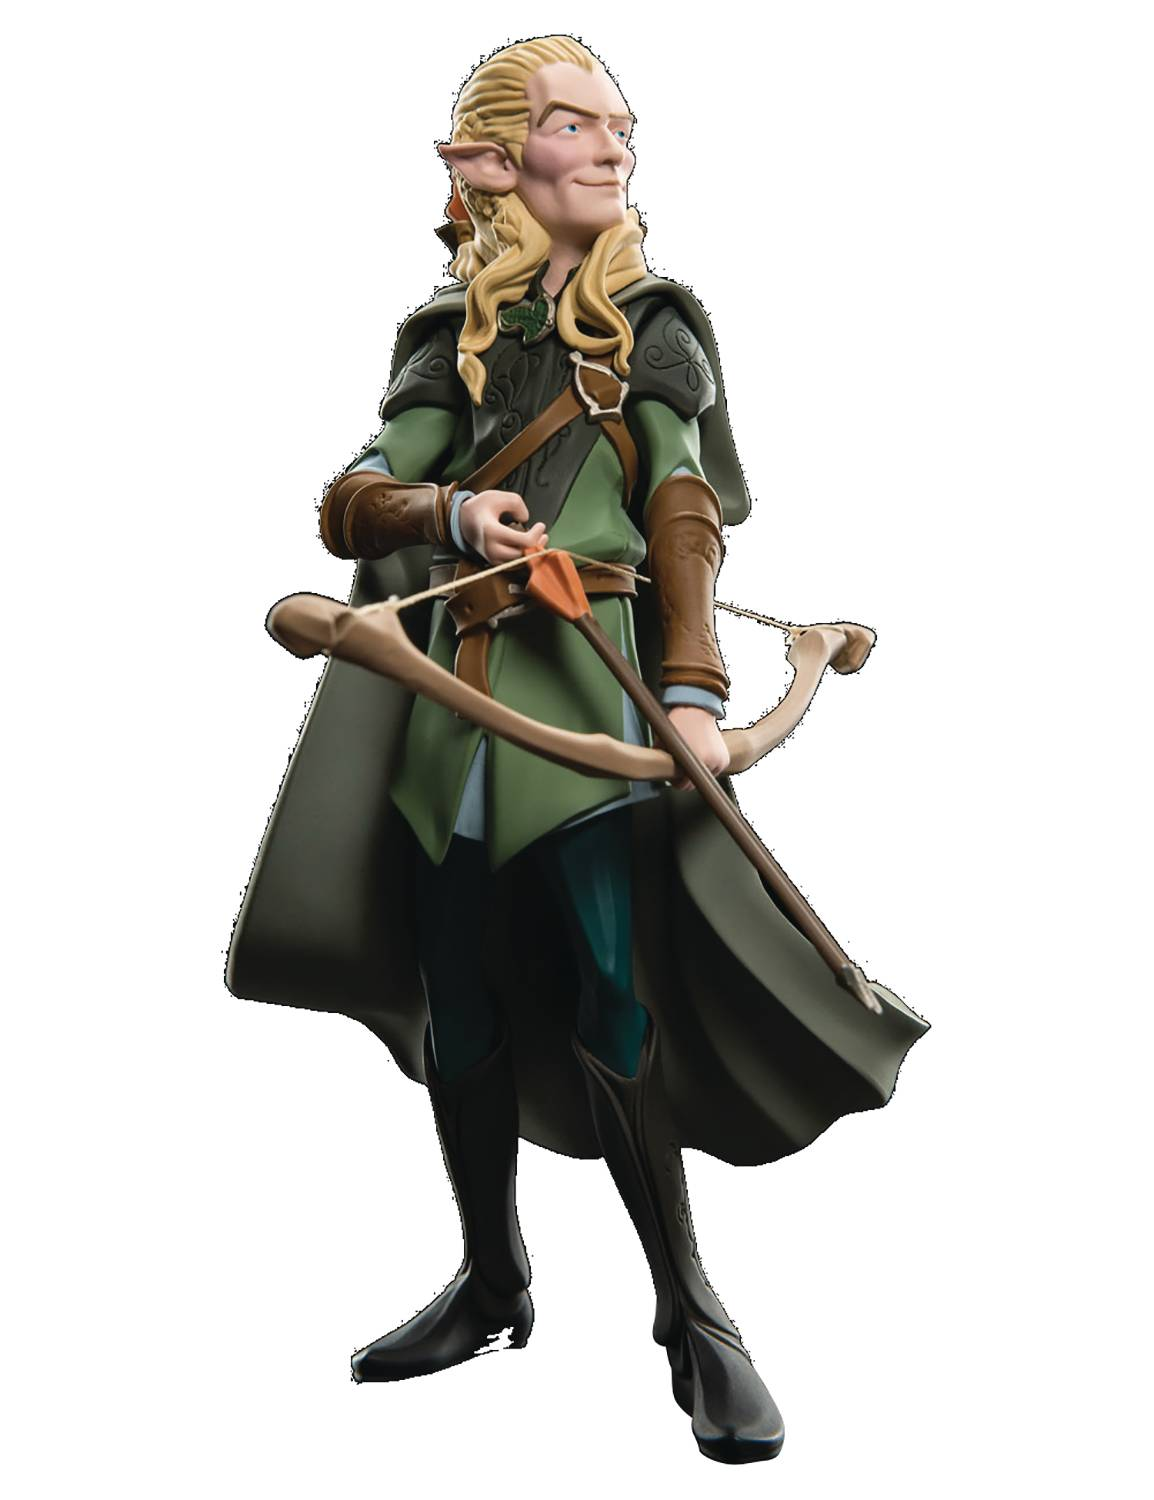 MINI EPICS LOTR LEGOLAS VINYL FIG